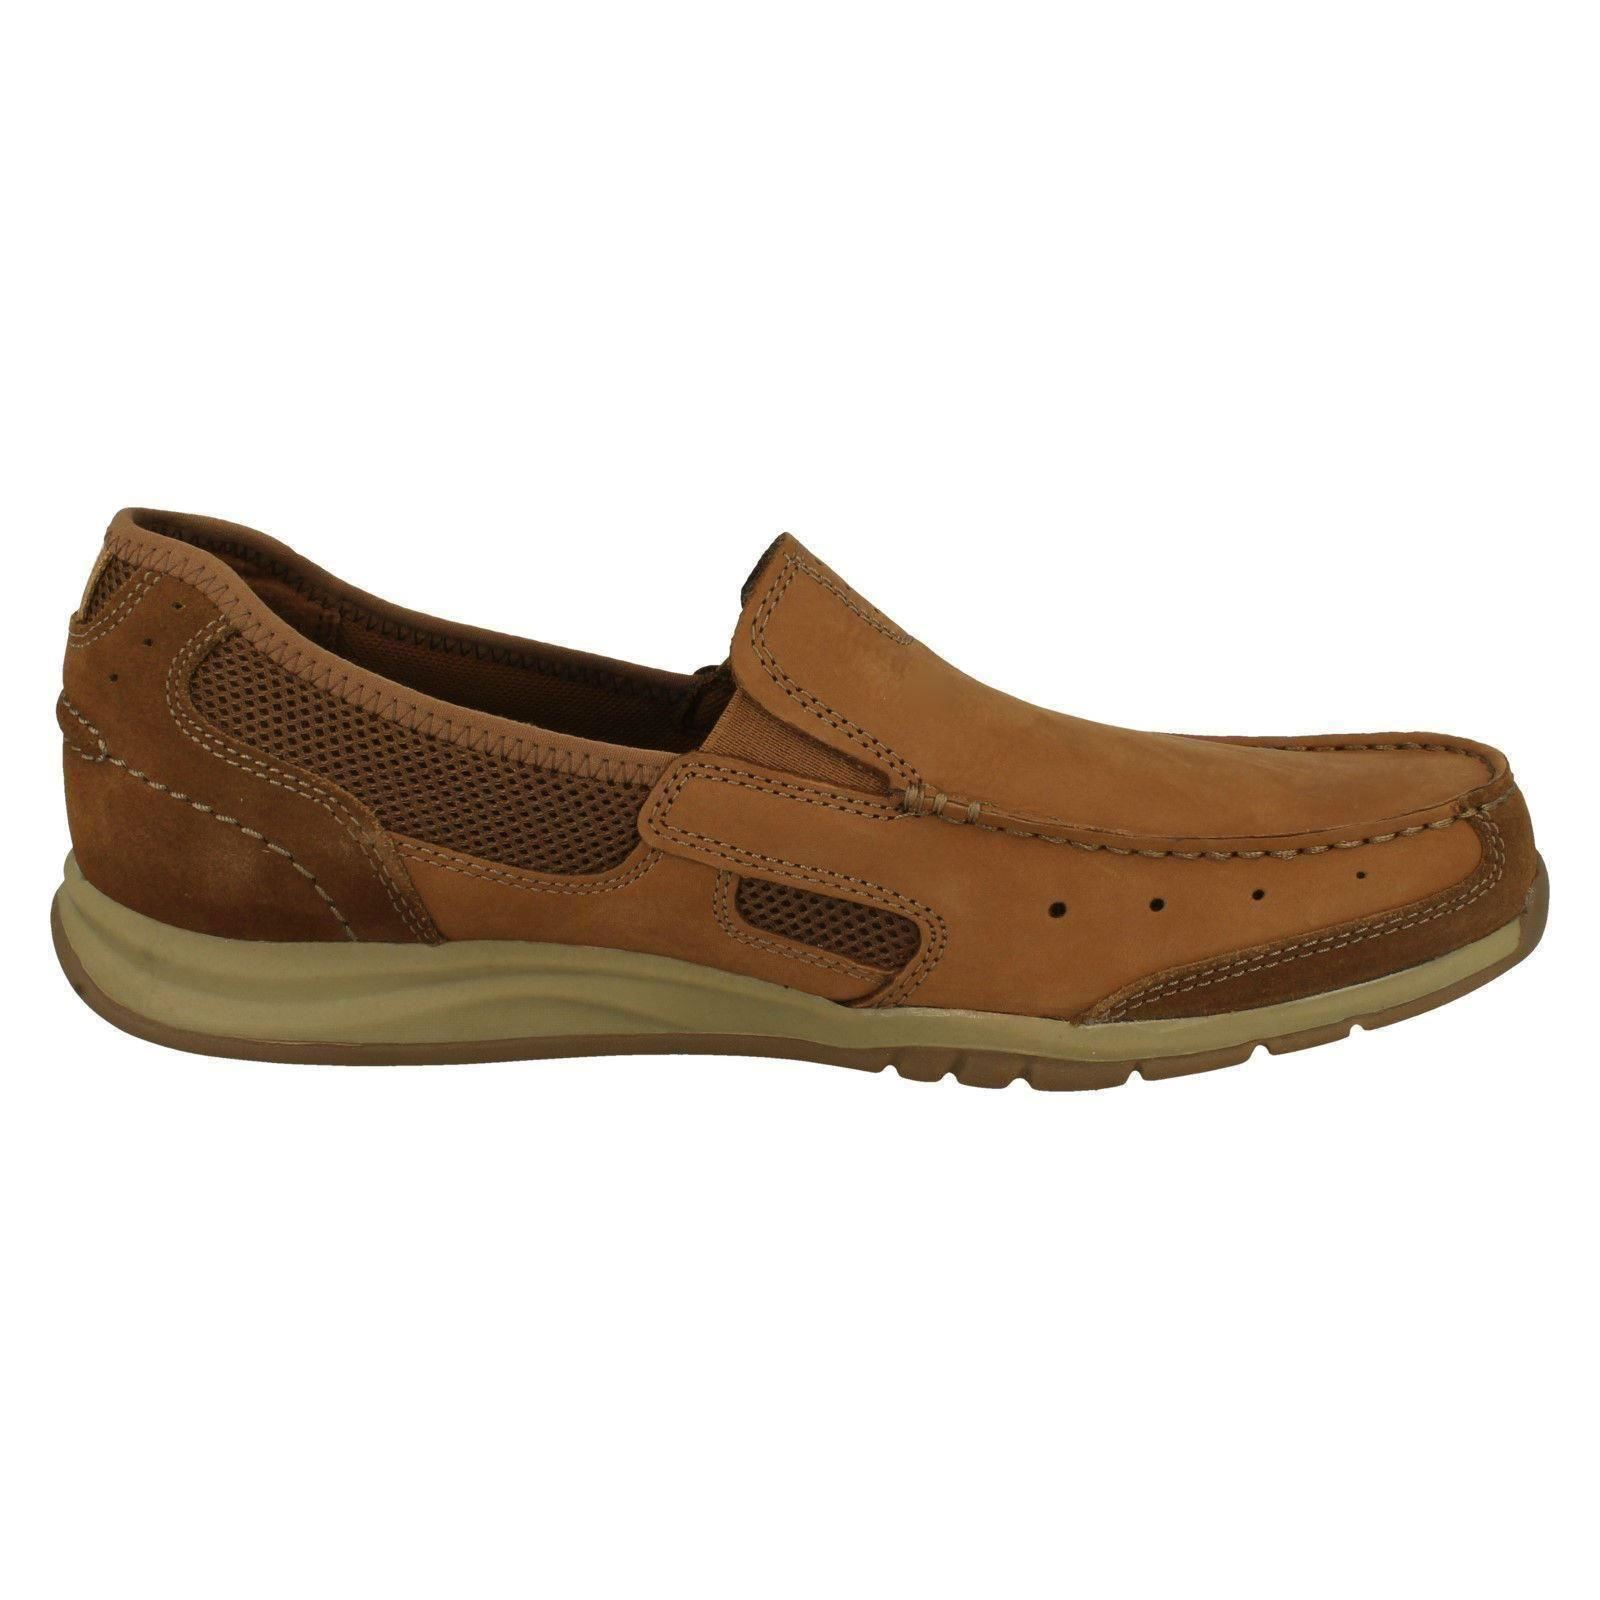 Mens Clarks Ramada Stylish Slip On Shoes Ramada Clarks Spanish 97f547